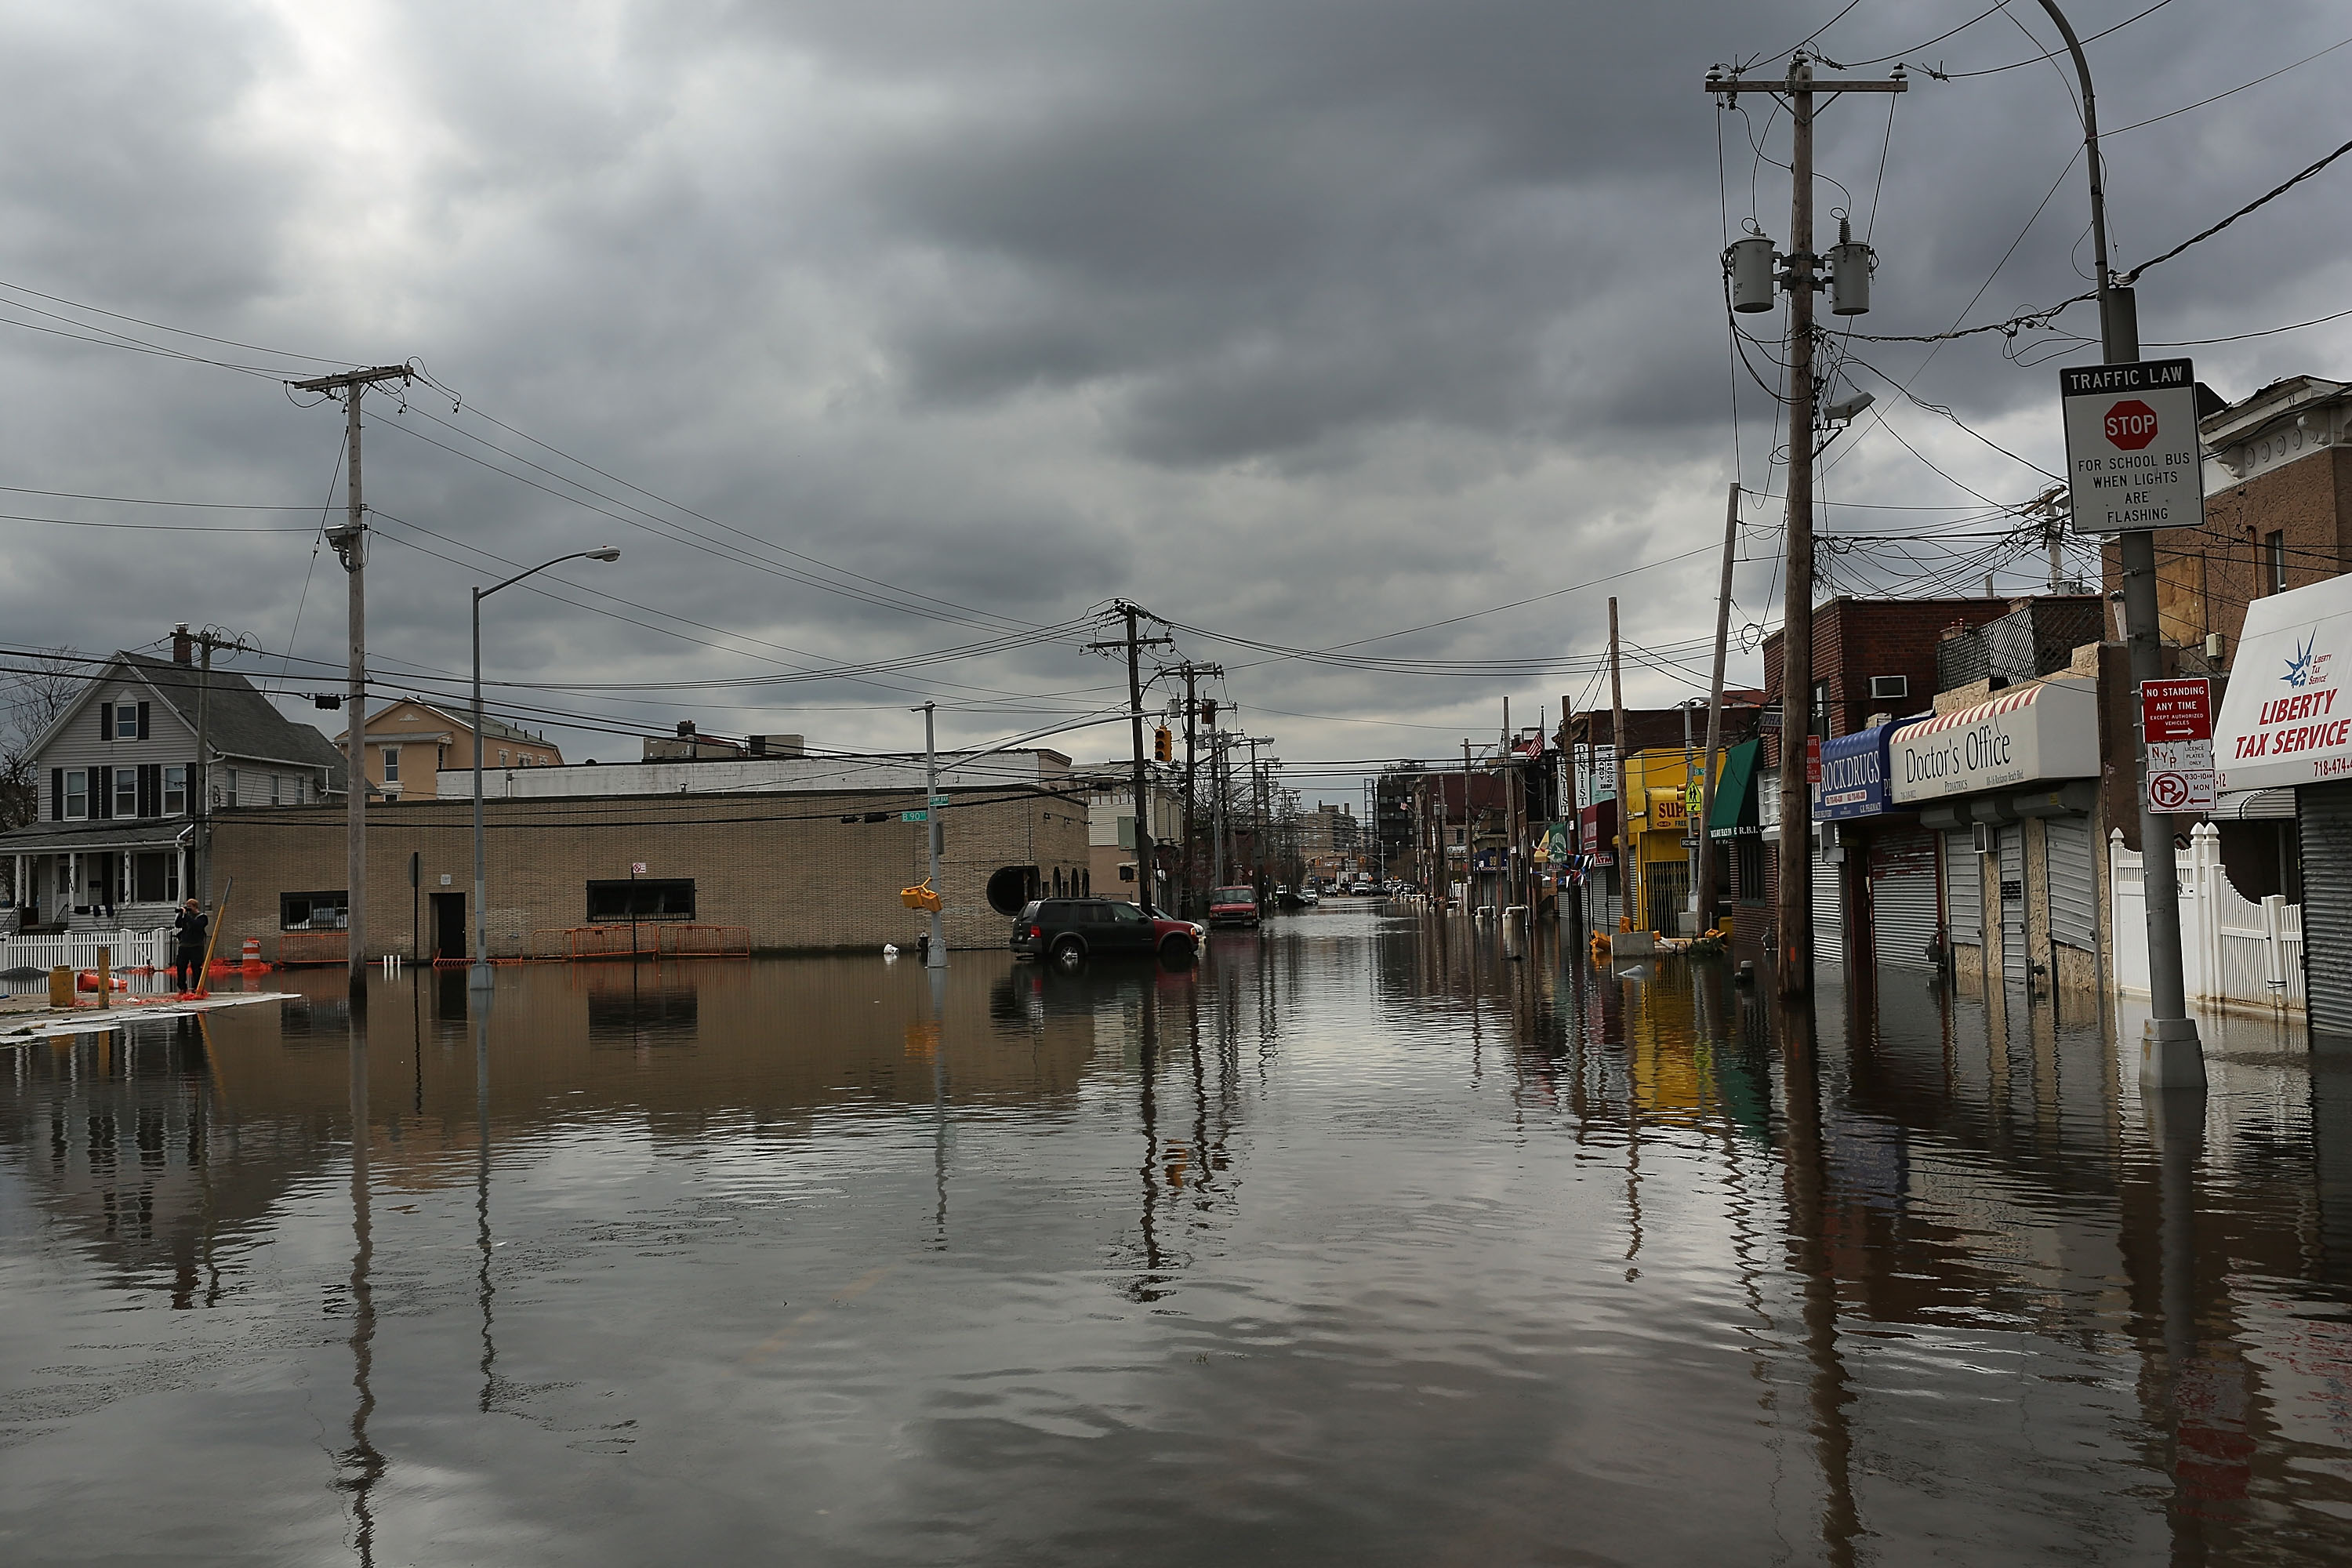 Flooding in Queens after Hurricane Sandy struck. (Photo: Spencer Platt/Getty Images)